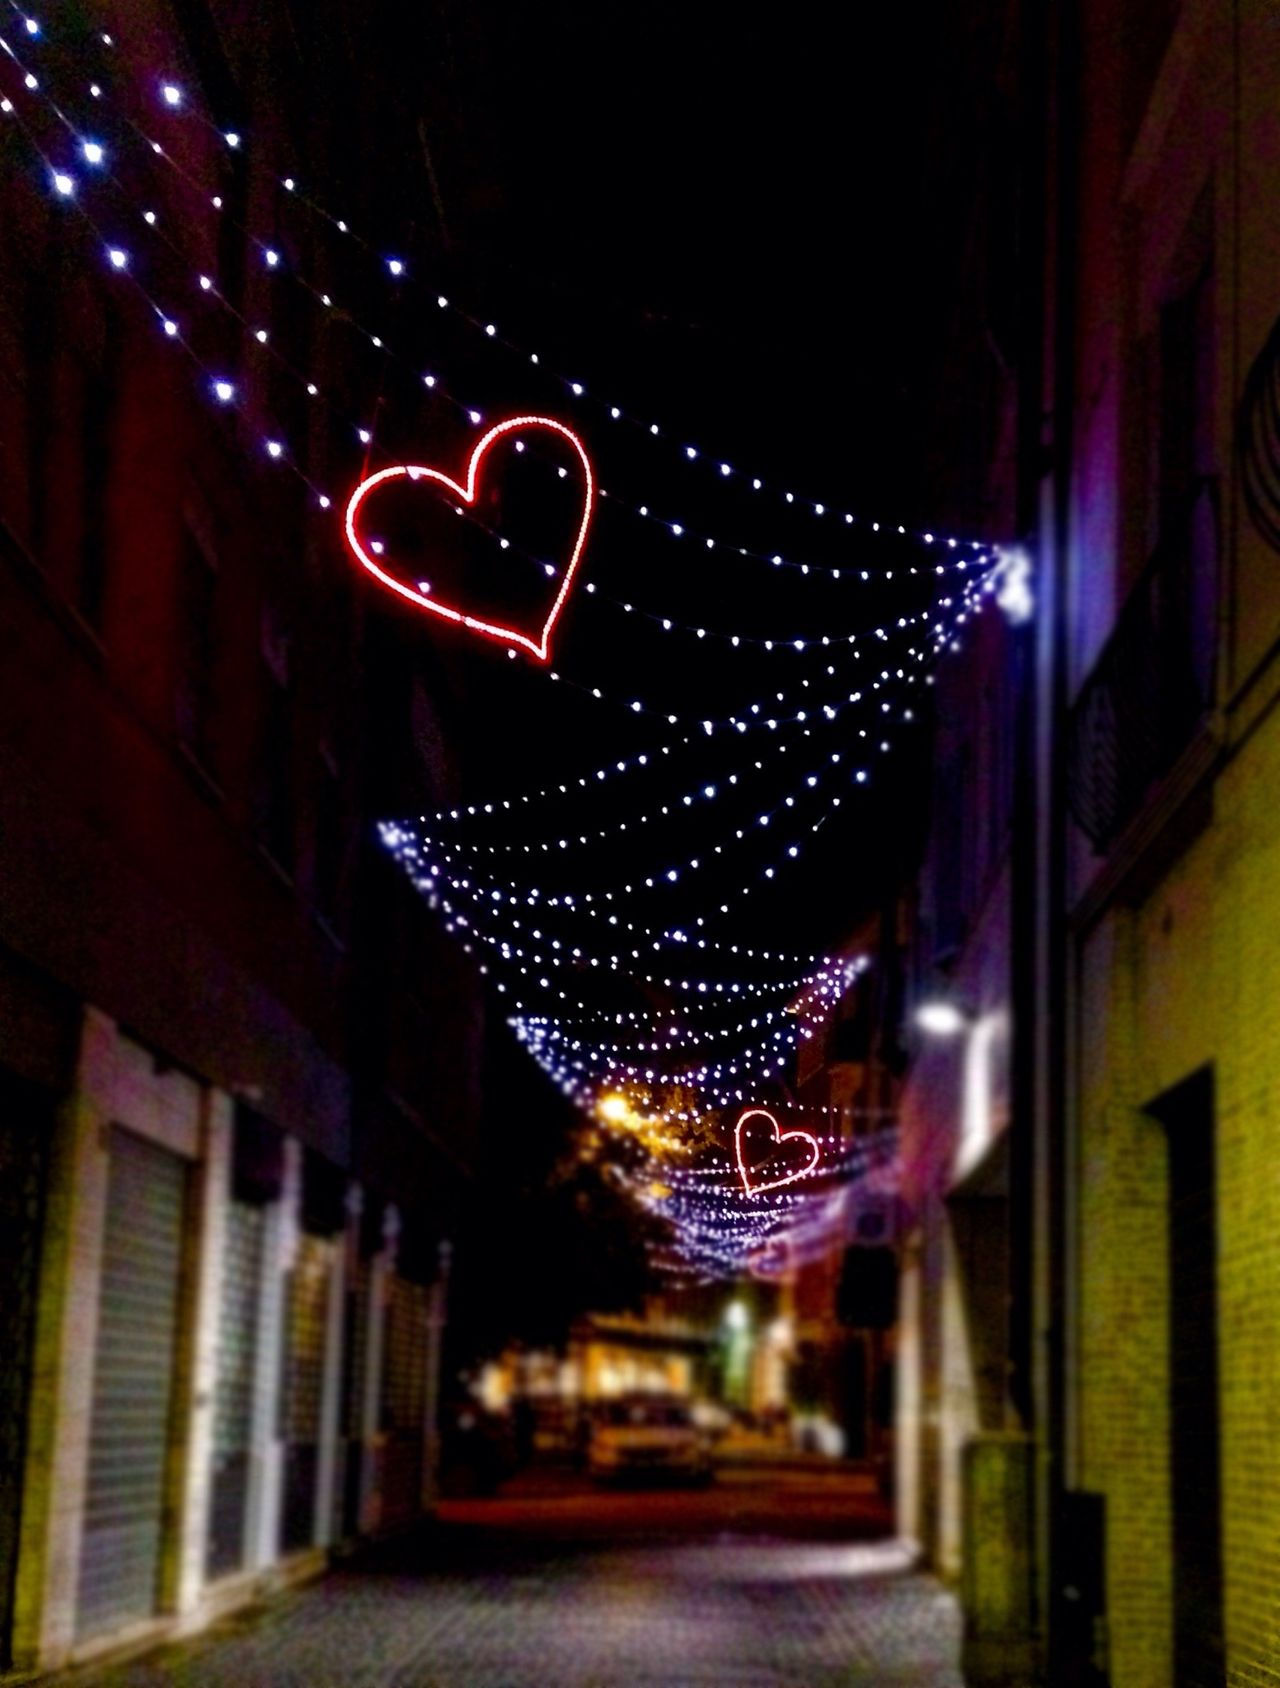 Illuminated Night Neon Architecture No People Building Exterior Outdoors Low Angle View City Valentine Valentine's Day  Red Heart Heart Shape Heartbeat Moments Love Romantic Street Lights Lighting Equipment